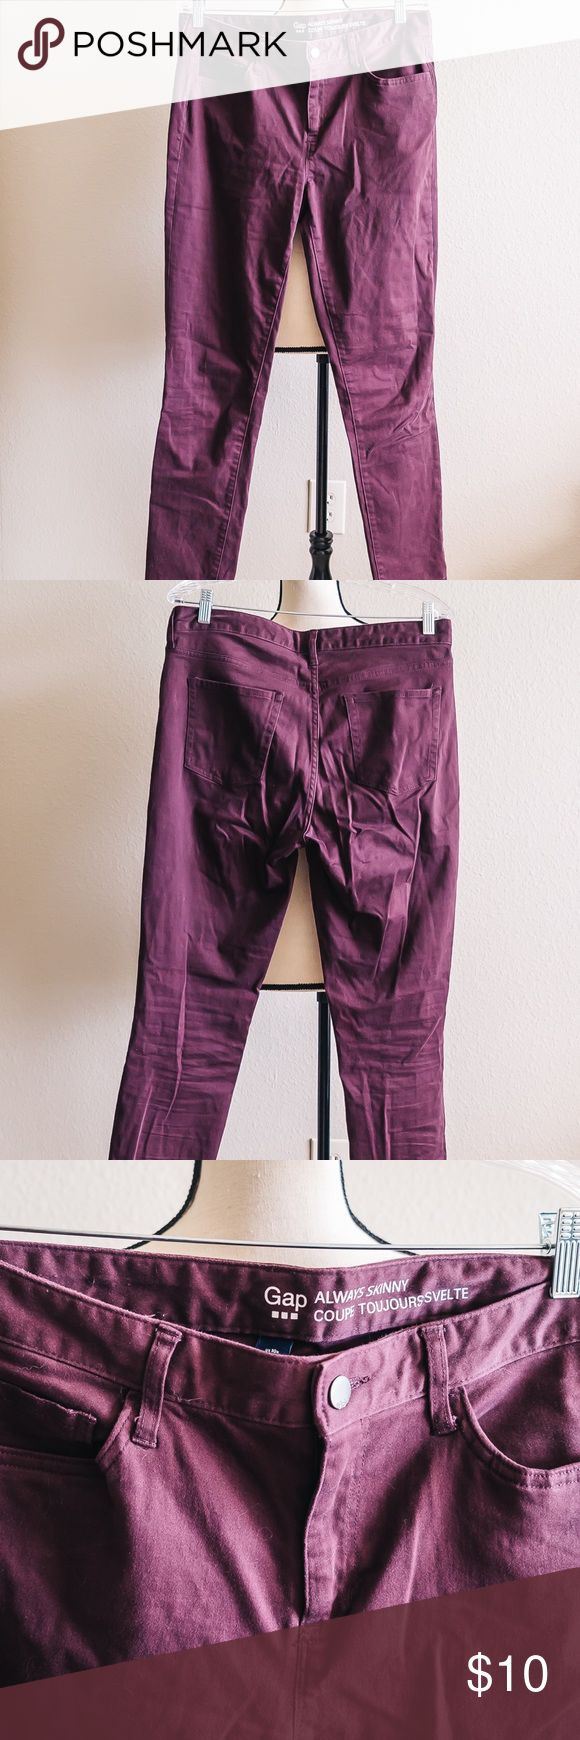 """Women's GAP Purple Always Skinny Pants - Size 10 Women's purple Always Skinny pants by GAP. Only worn a couple of times and in great condition! Length: 40"""", Waist: 32"""", Hips: 40"""" GAP Pants"""